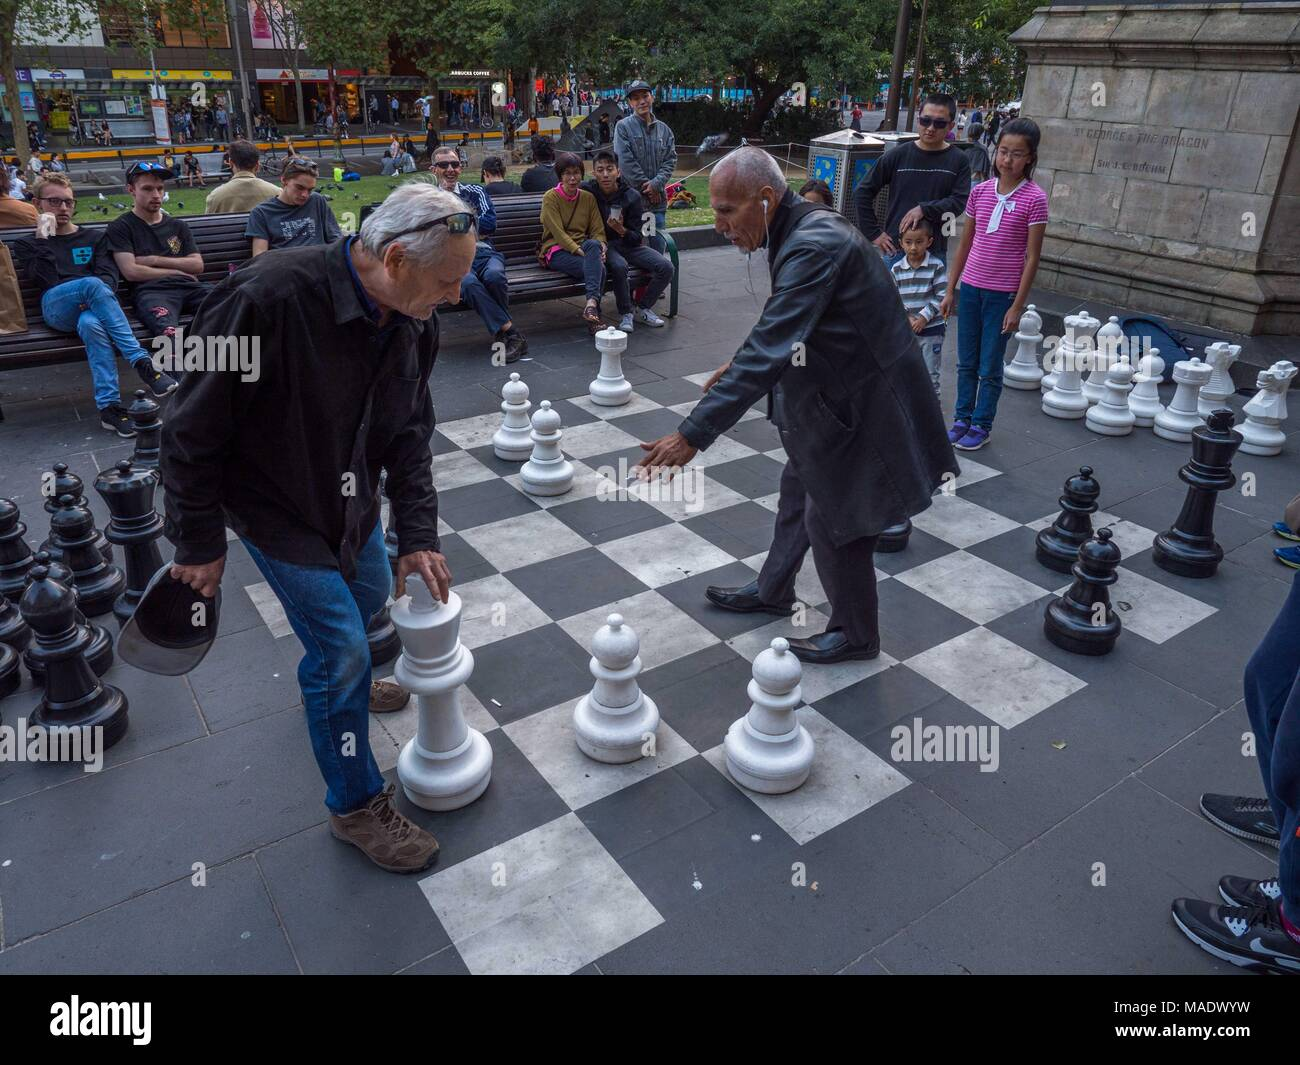 Young asian girl and older man playing chess on outdoor board in front of library.  Young girl moving chess pieces.  Old men arguing over moves. - Stock Image